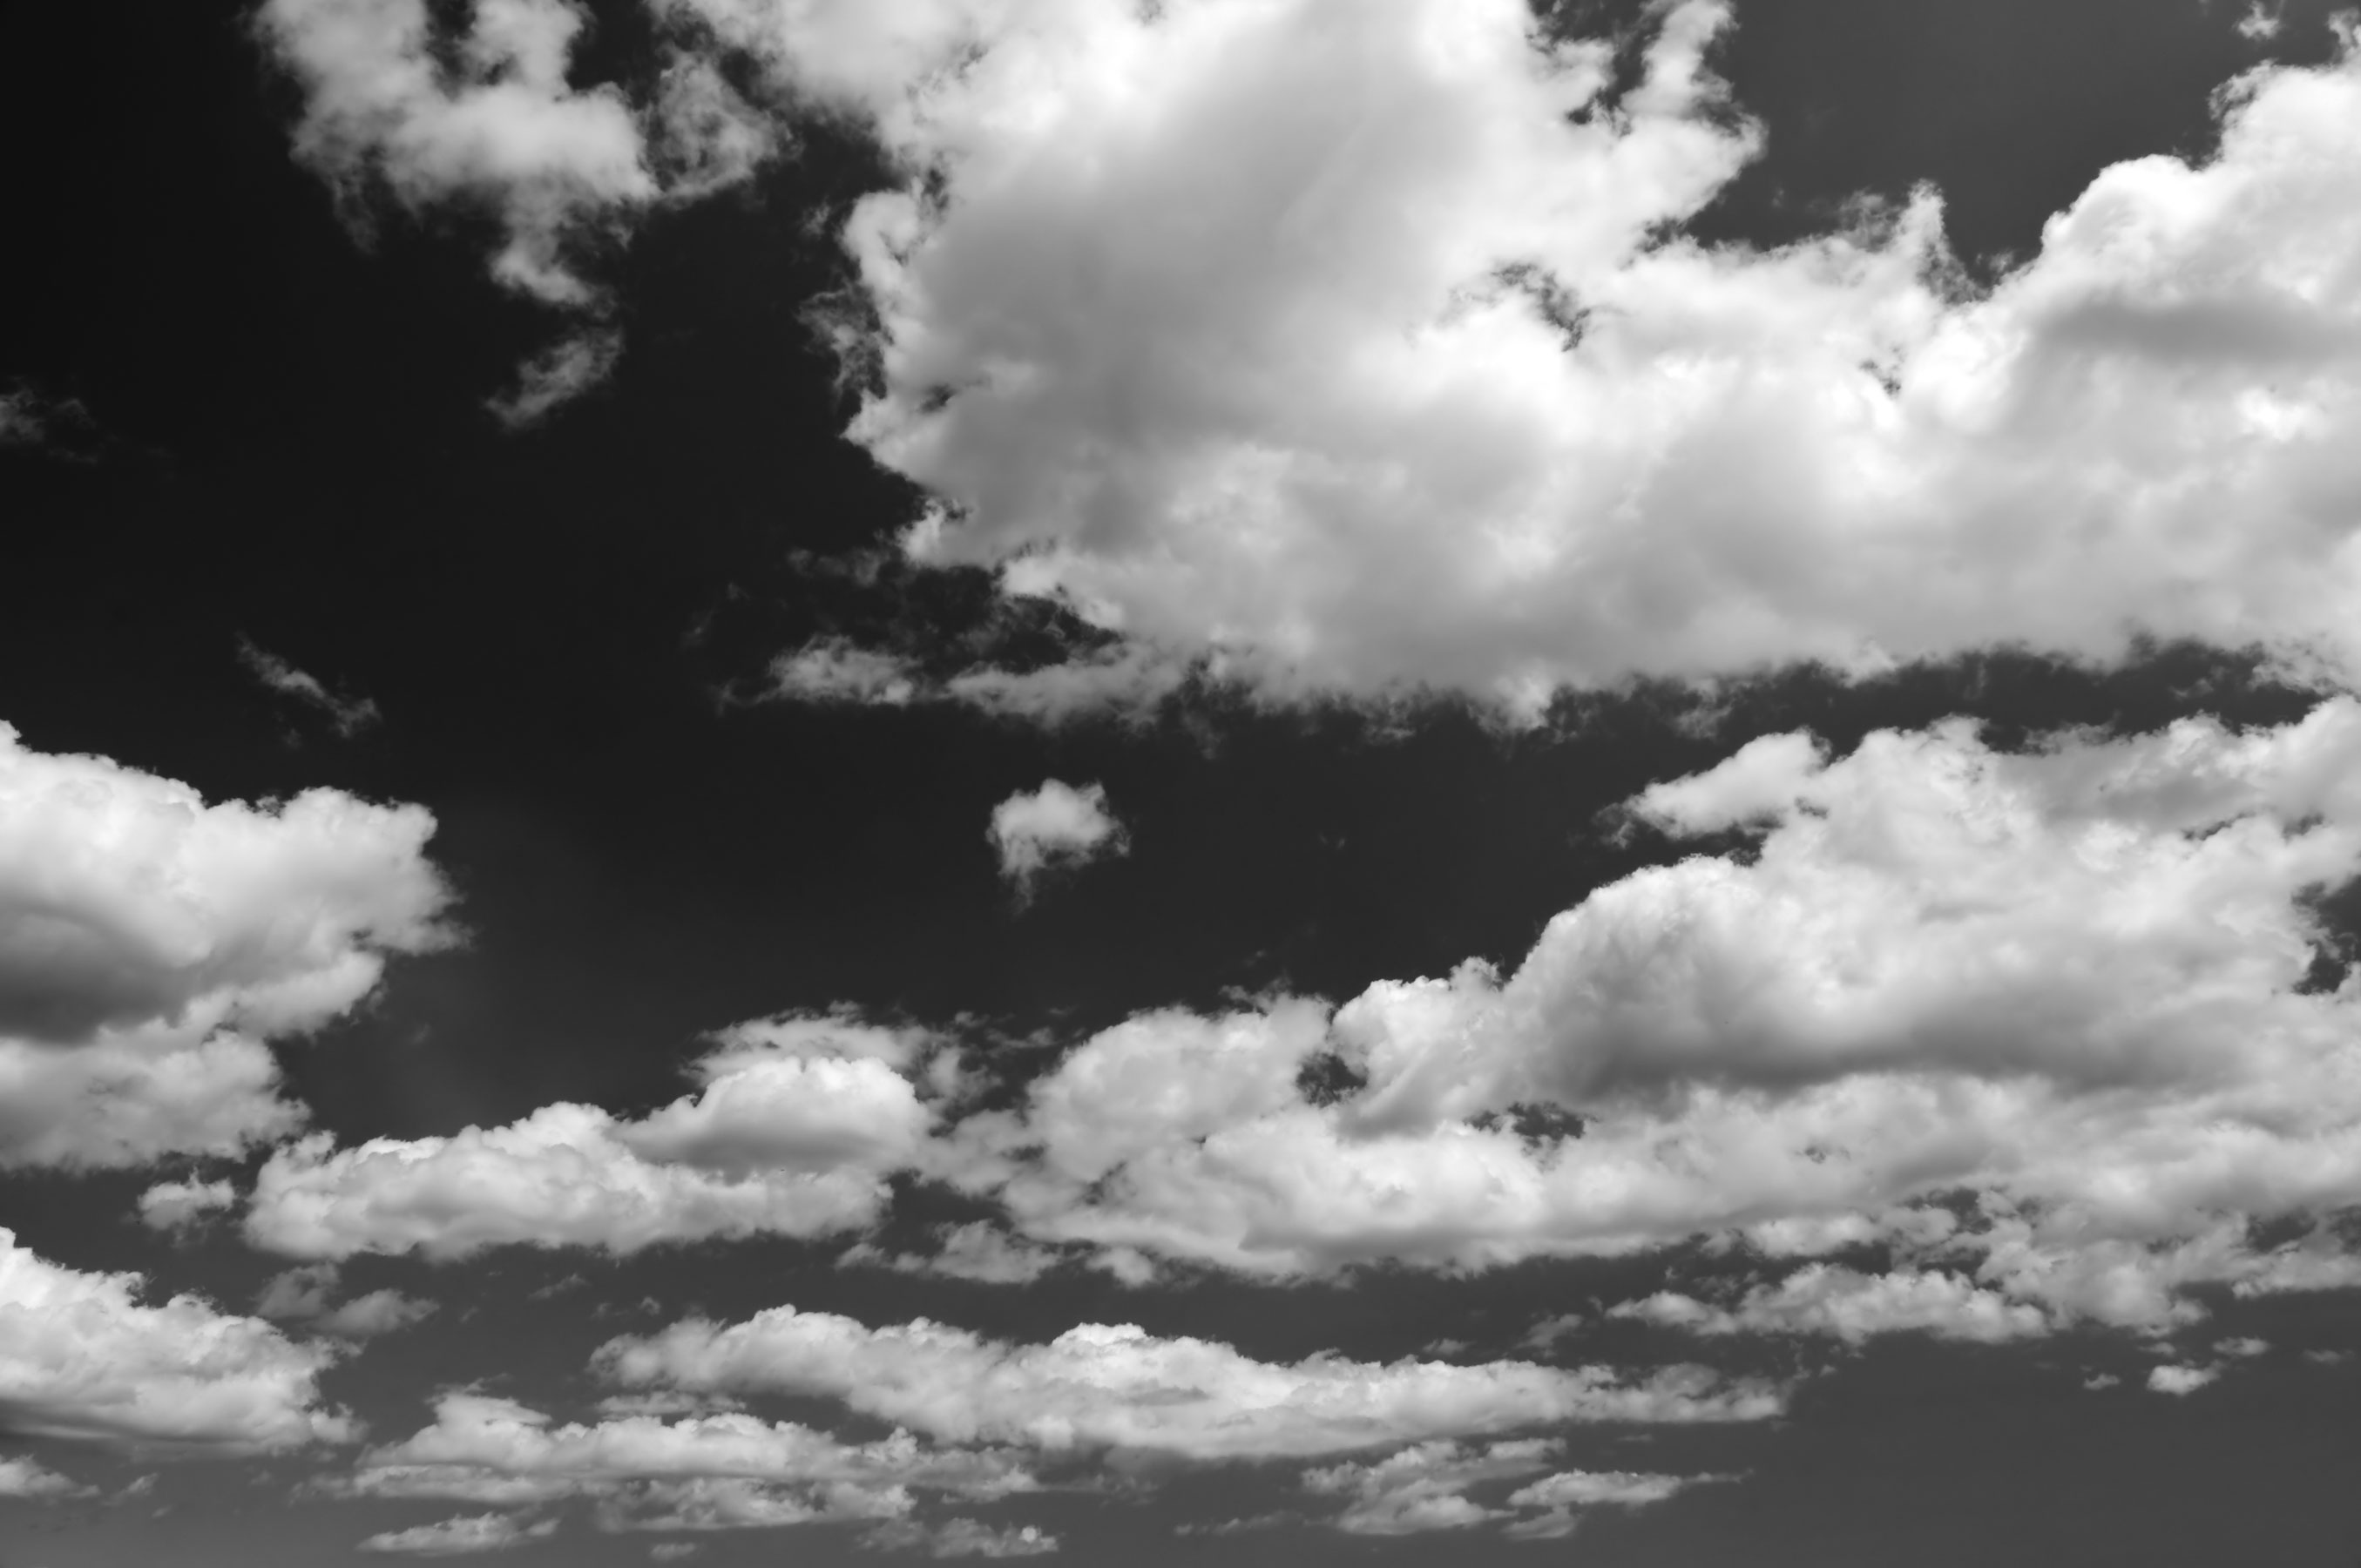 bg-sky-with-clouds-bw ::